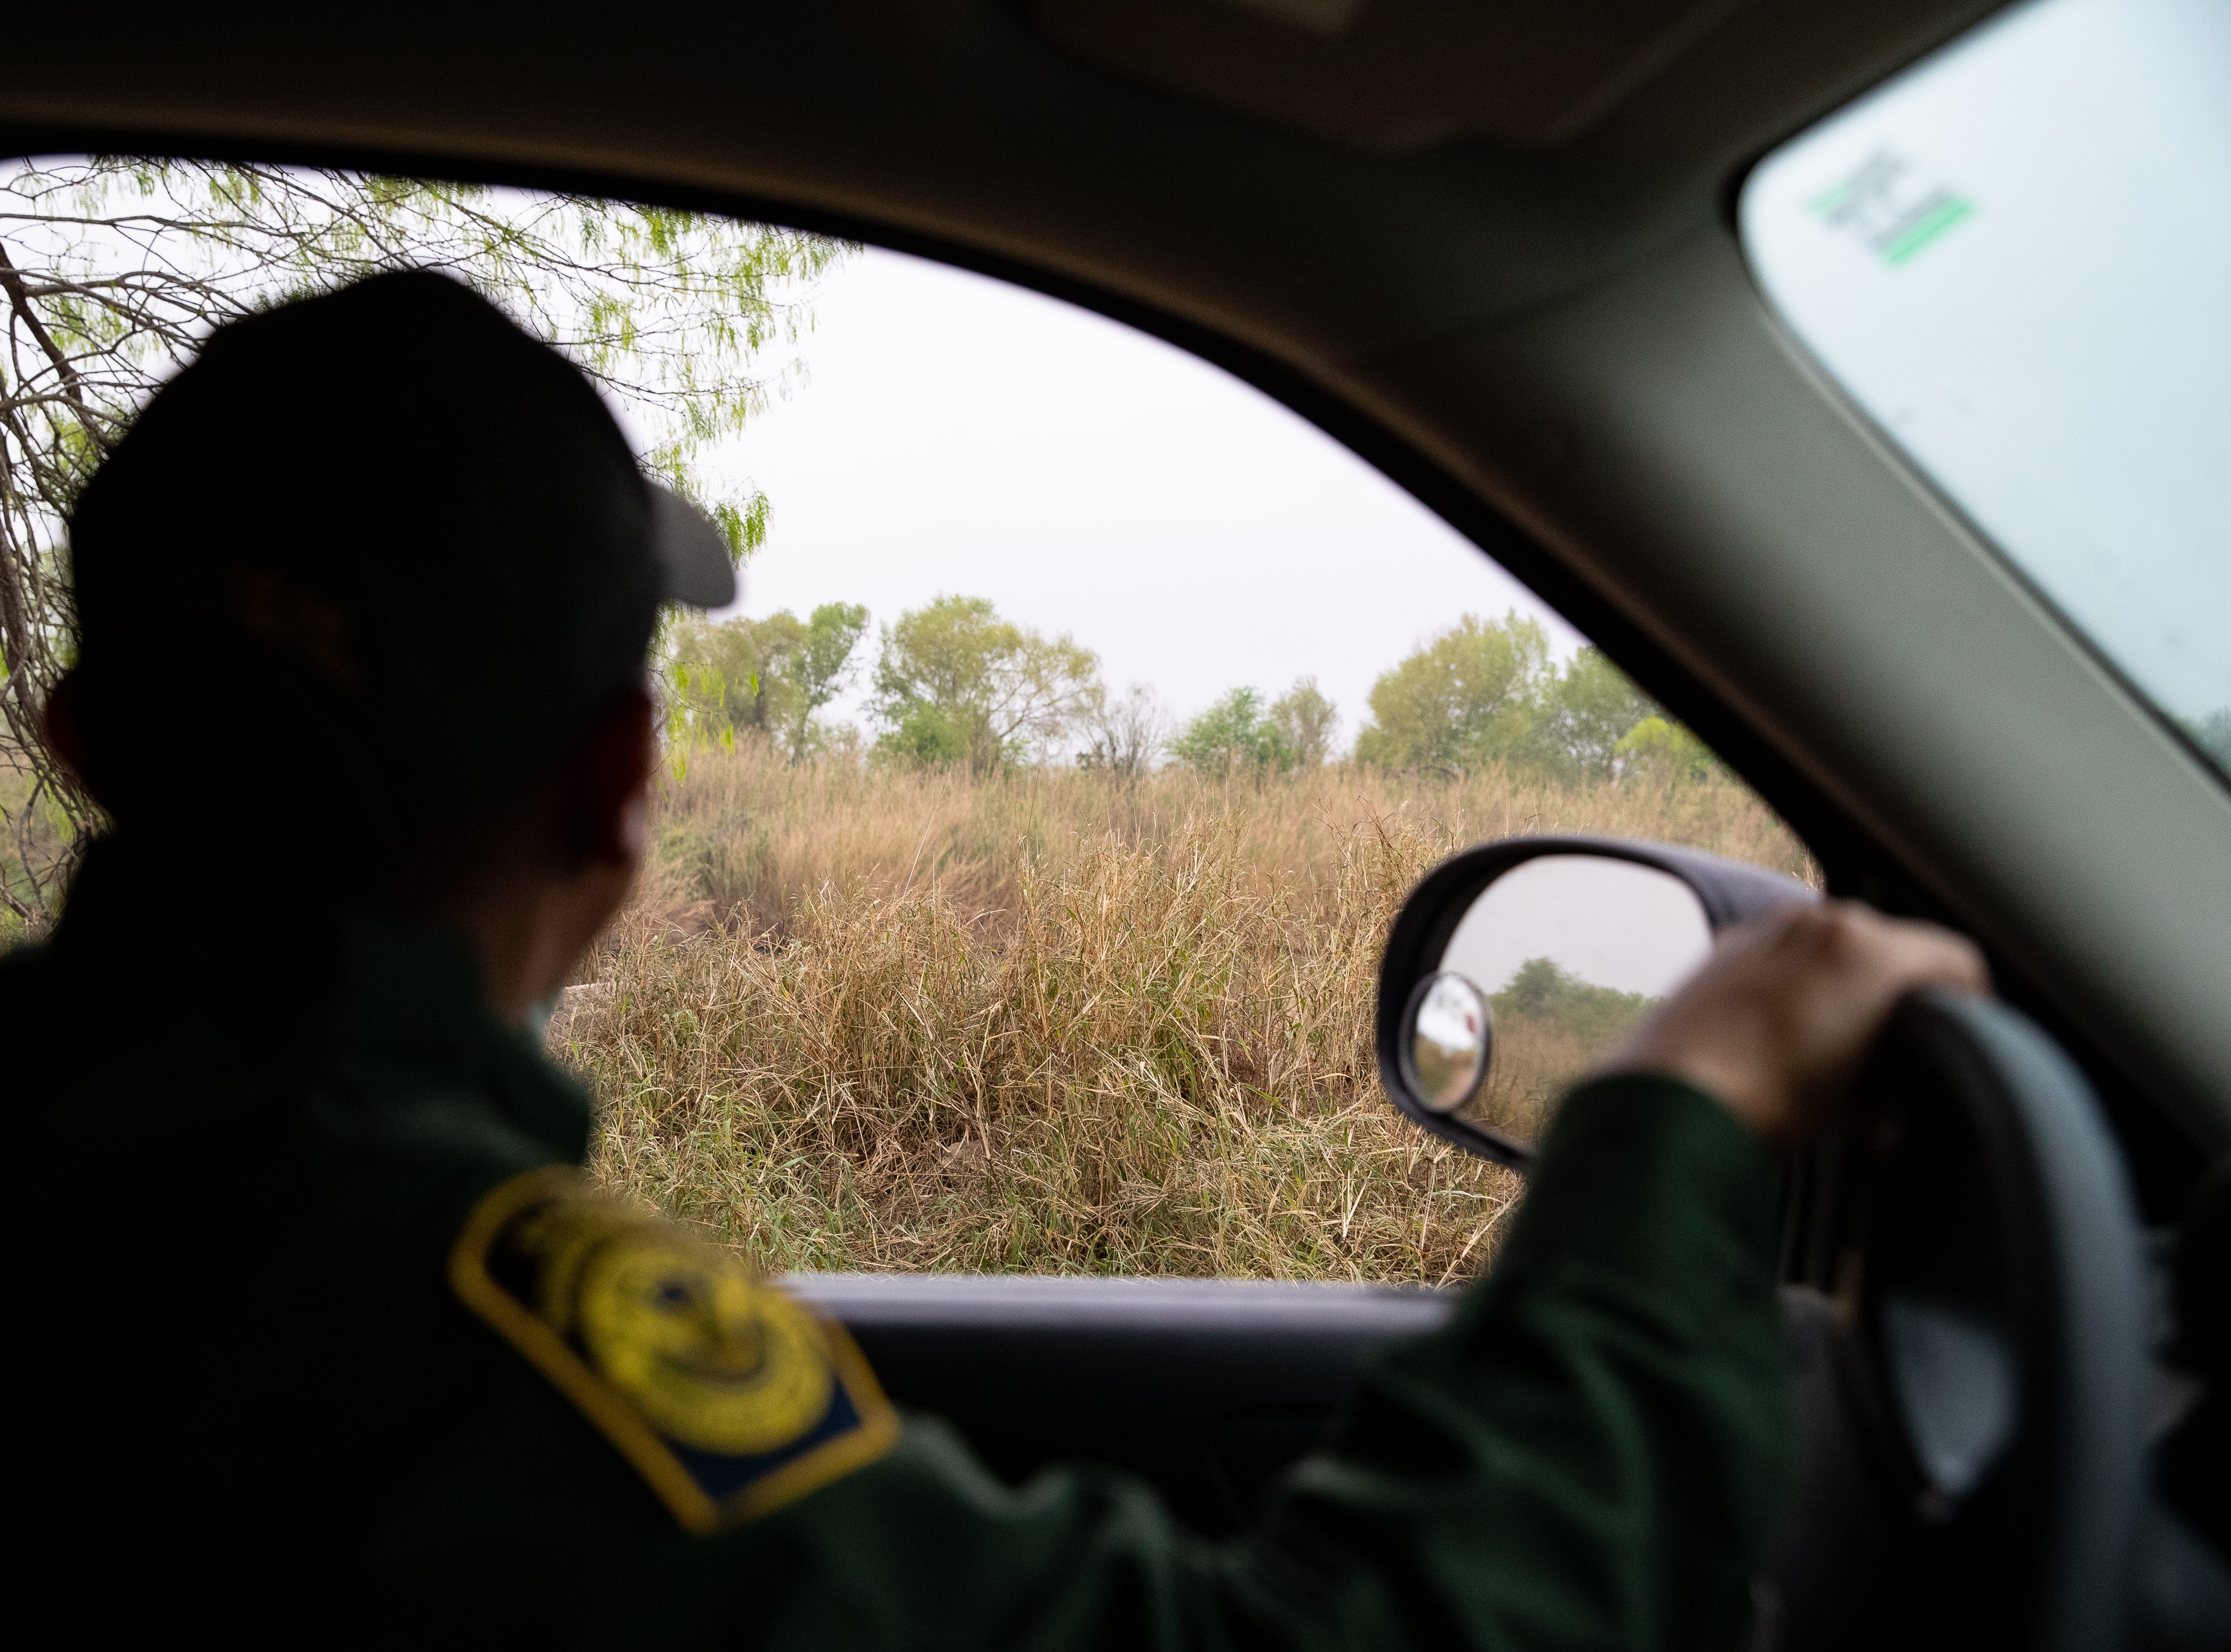 Border Patrol Agent Hermann Rivera looks as he drives past a field as other agents as other agents on foot search an area in Penitas, TX  for migrants spotted running in the area on Tuesday, Feb. 26, 2019.